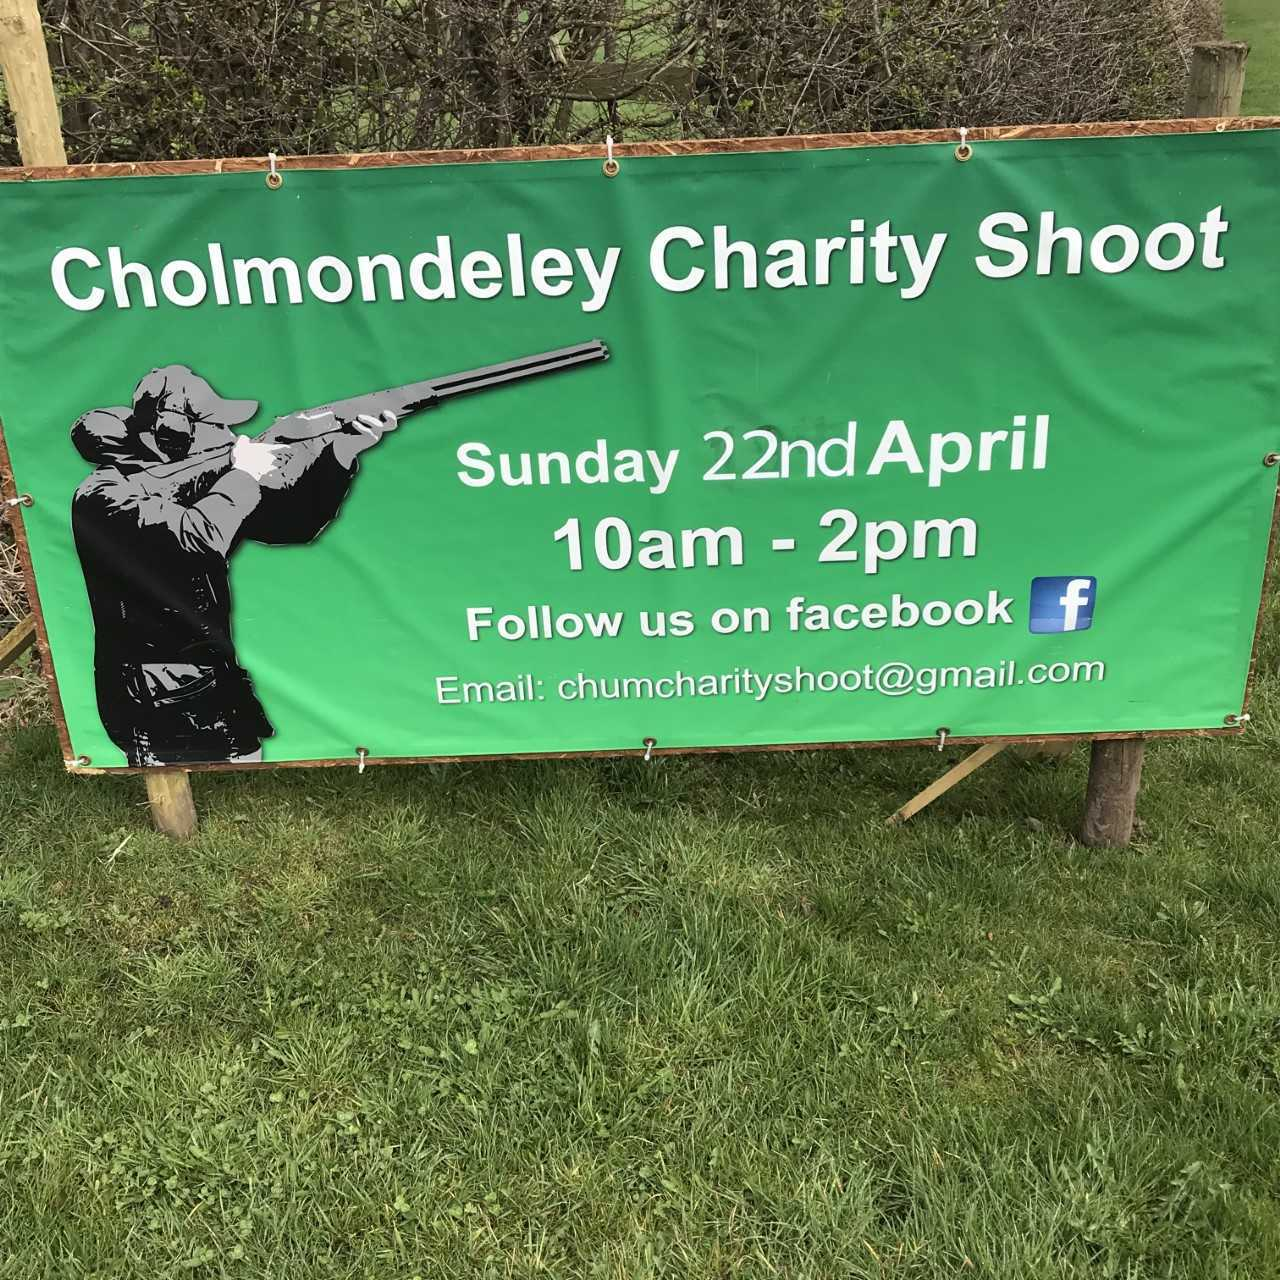 The Cholmondeley shoot will be on April 22